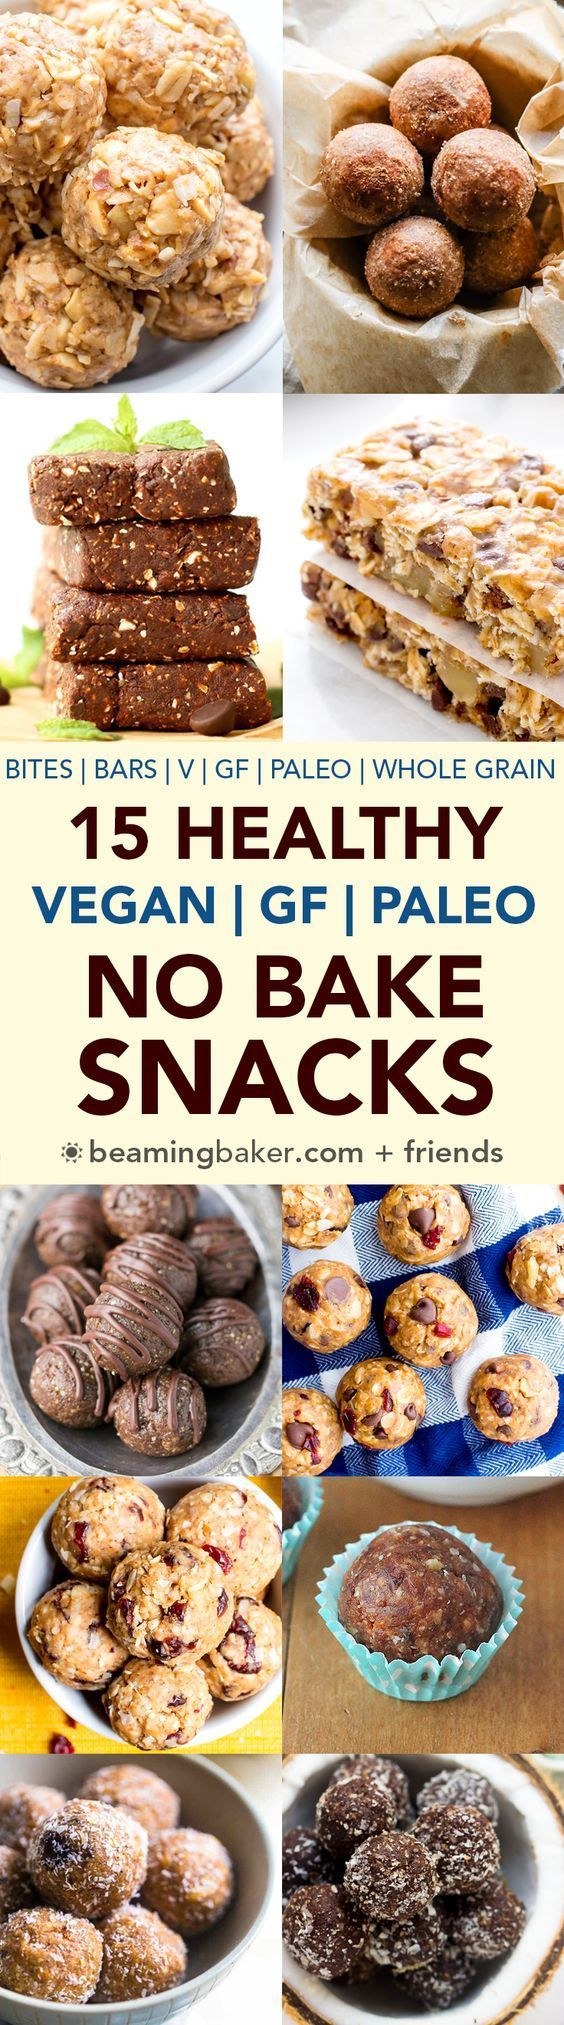 15 Healthy Gluten Free Vegan No Bake Snacks (V, GF, Paleo